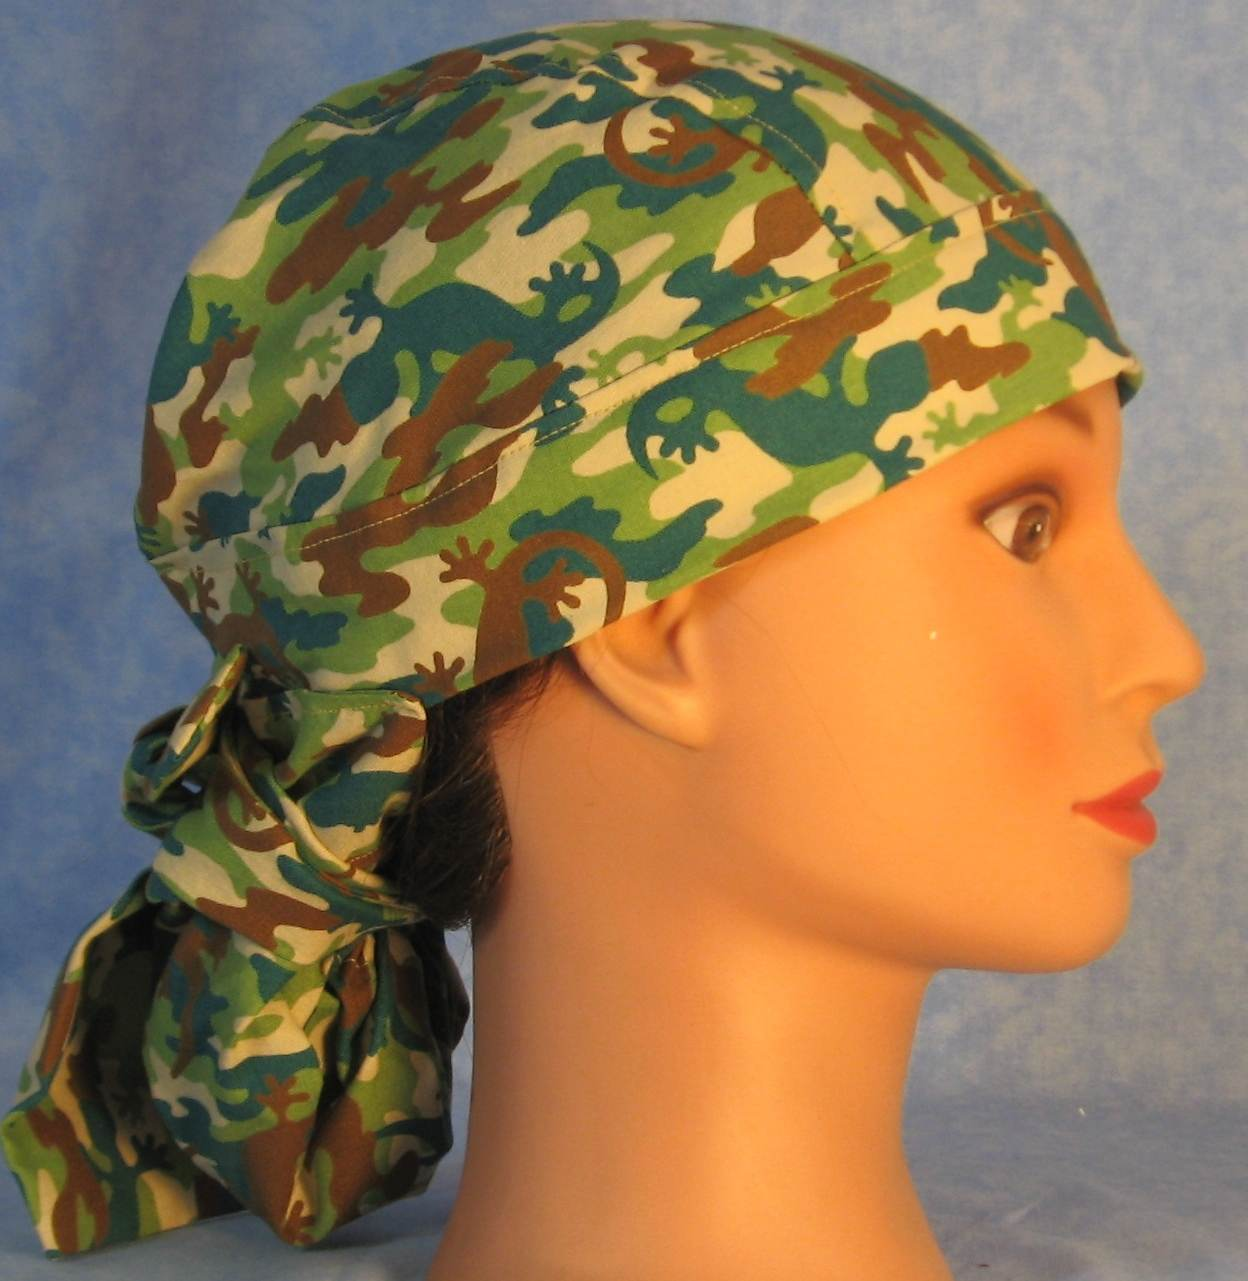 Hair Bag Do Rag in Lizards in Brown Green Teal - Youth L-XL-Adult S